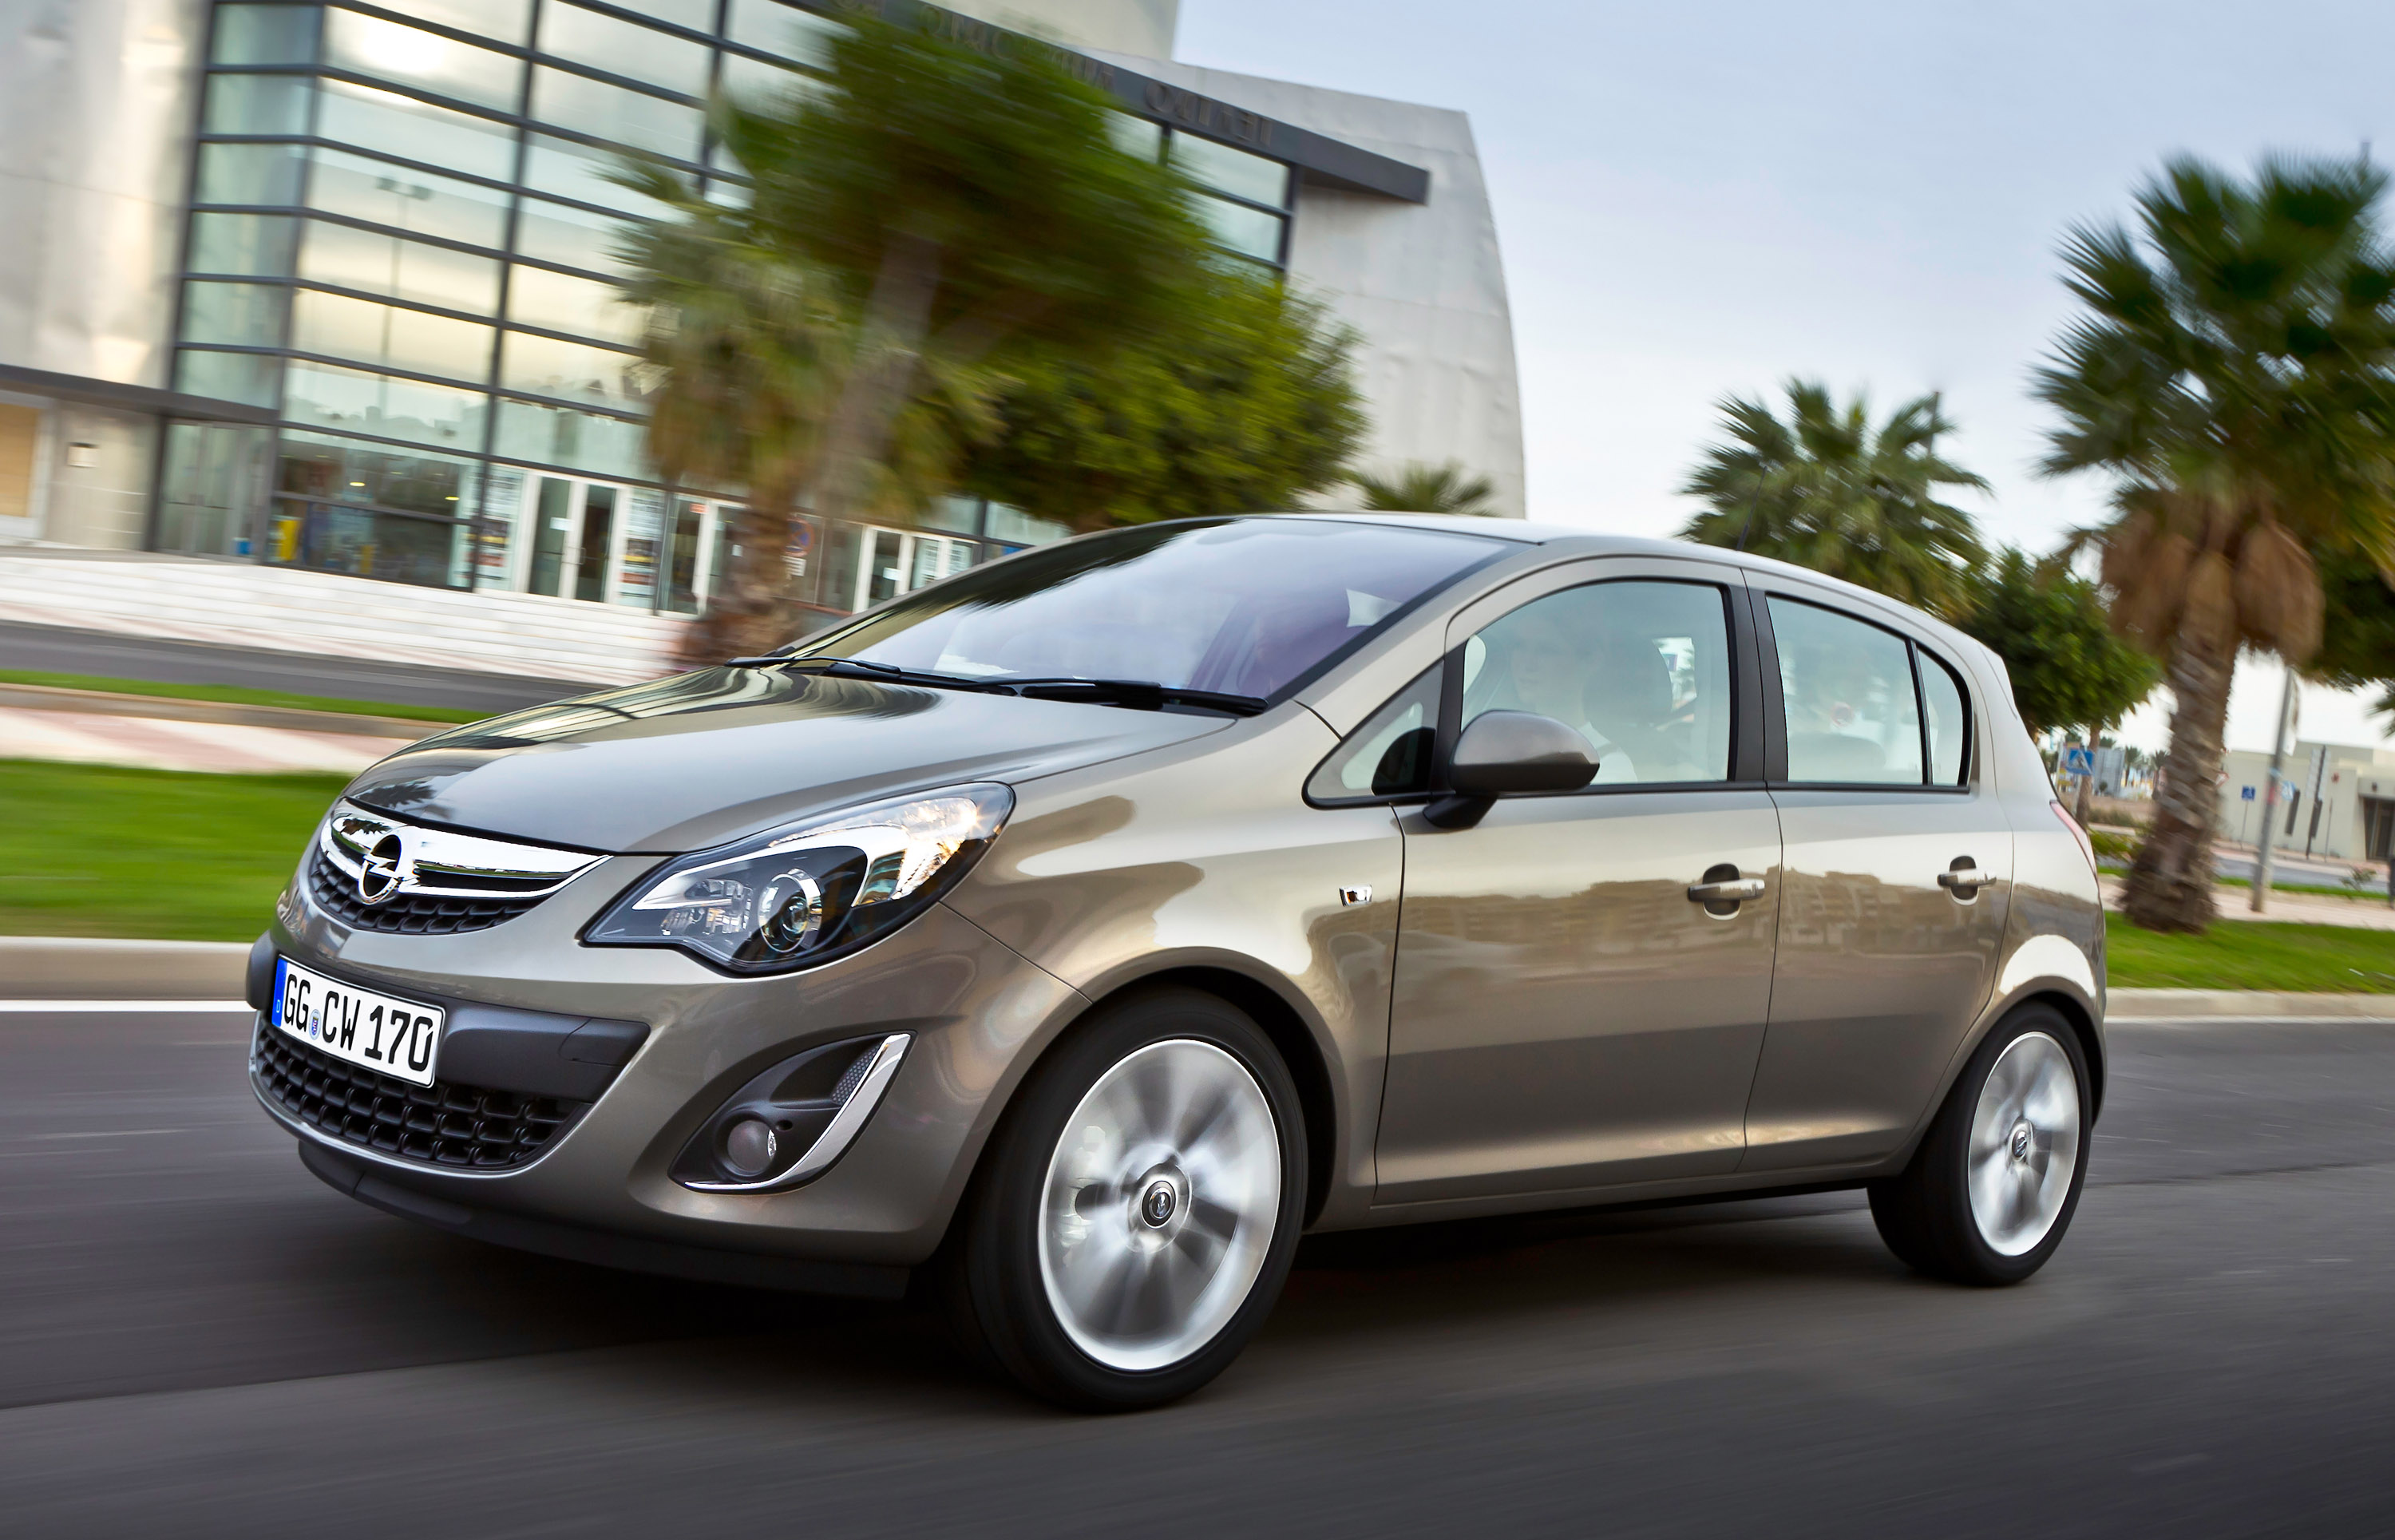 Opel Corsa photo #2